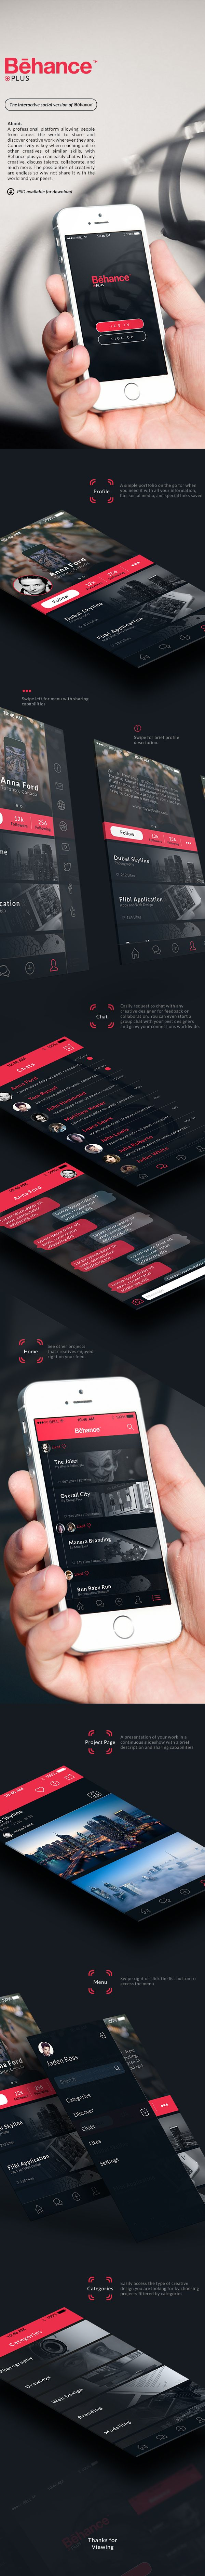 Behance Plus - App Design Concept